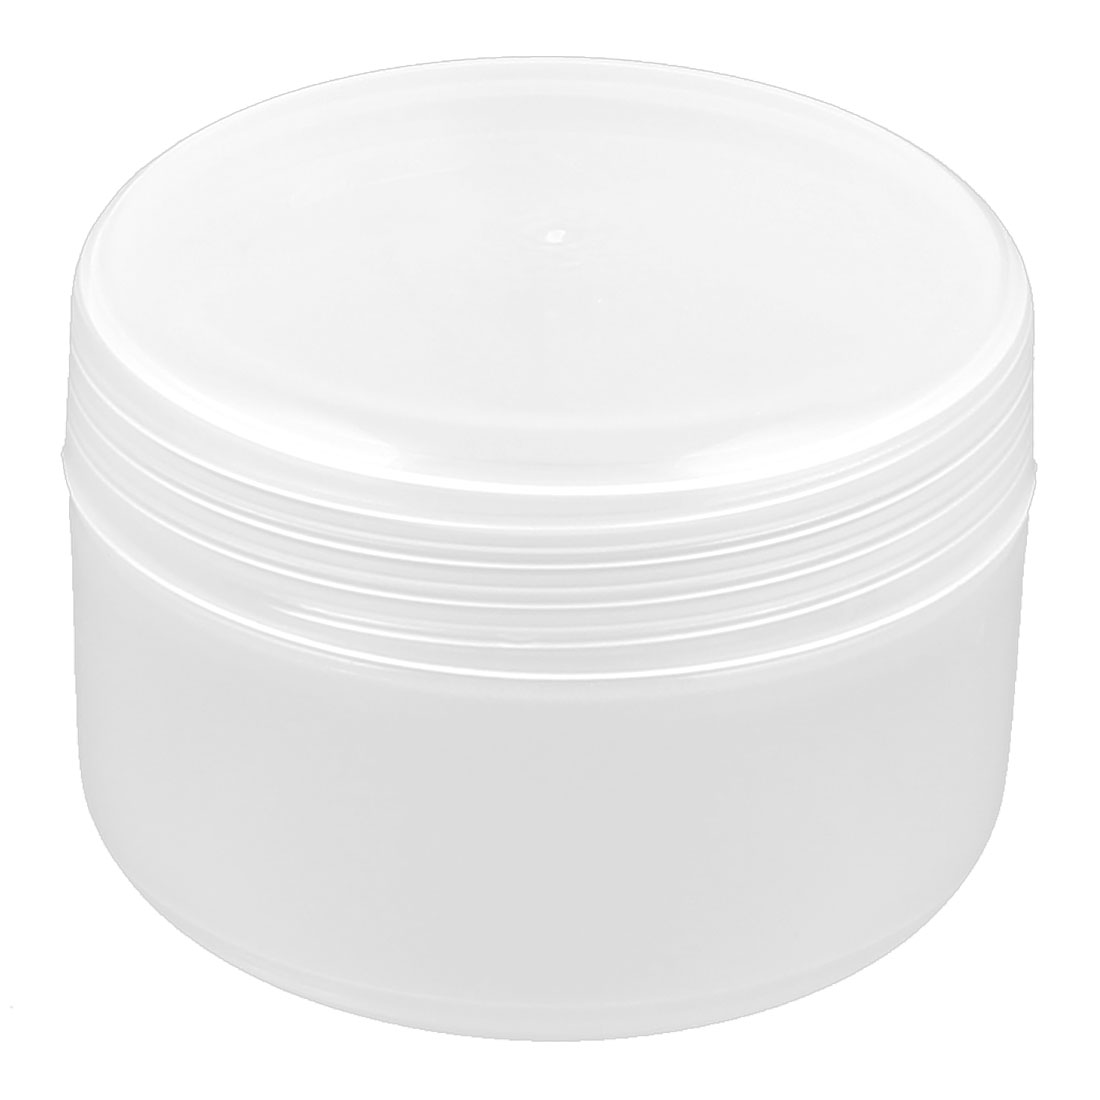 Clear Plastic Makeup Cosmetic Empty Jar Pot Face Cream Skin Lotion Bottle 100g - image 2 of 2